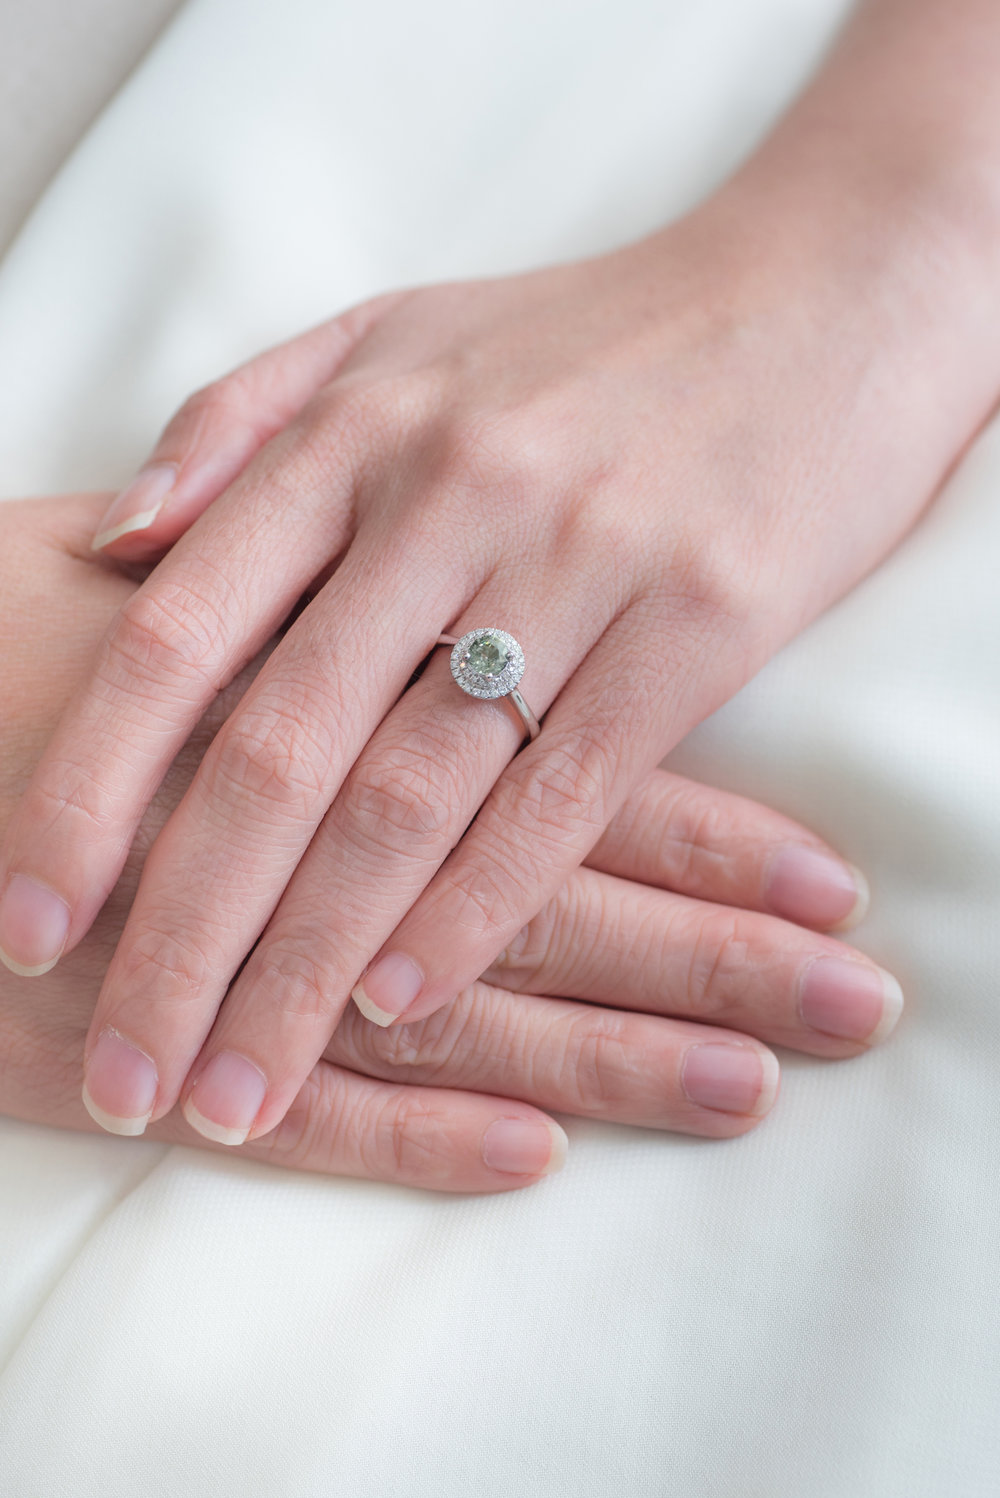 180919_Engagement-Ring_Sapphire_Lifestyle-1174.jpg